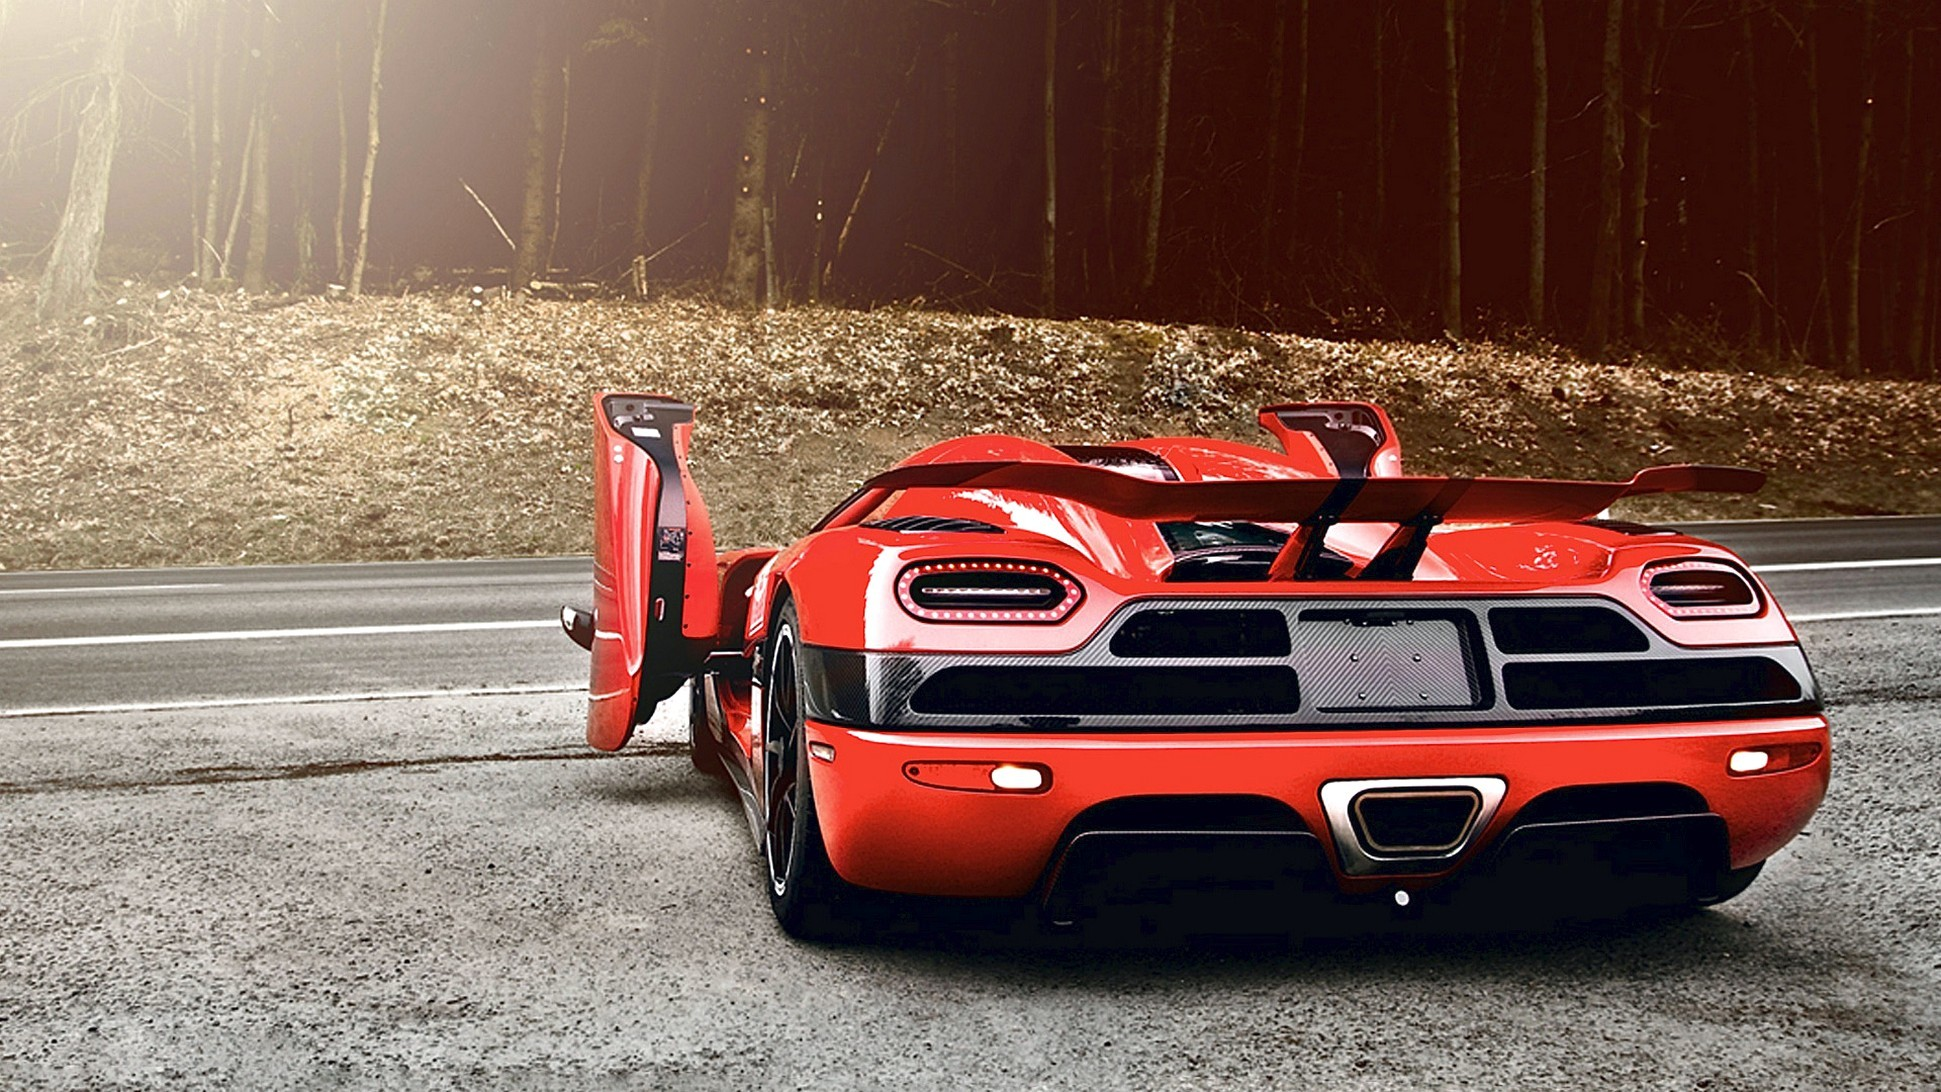 1941x1092 2011 Koenigsegg Agera R V7 Hd Car Wallpaper